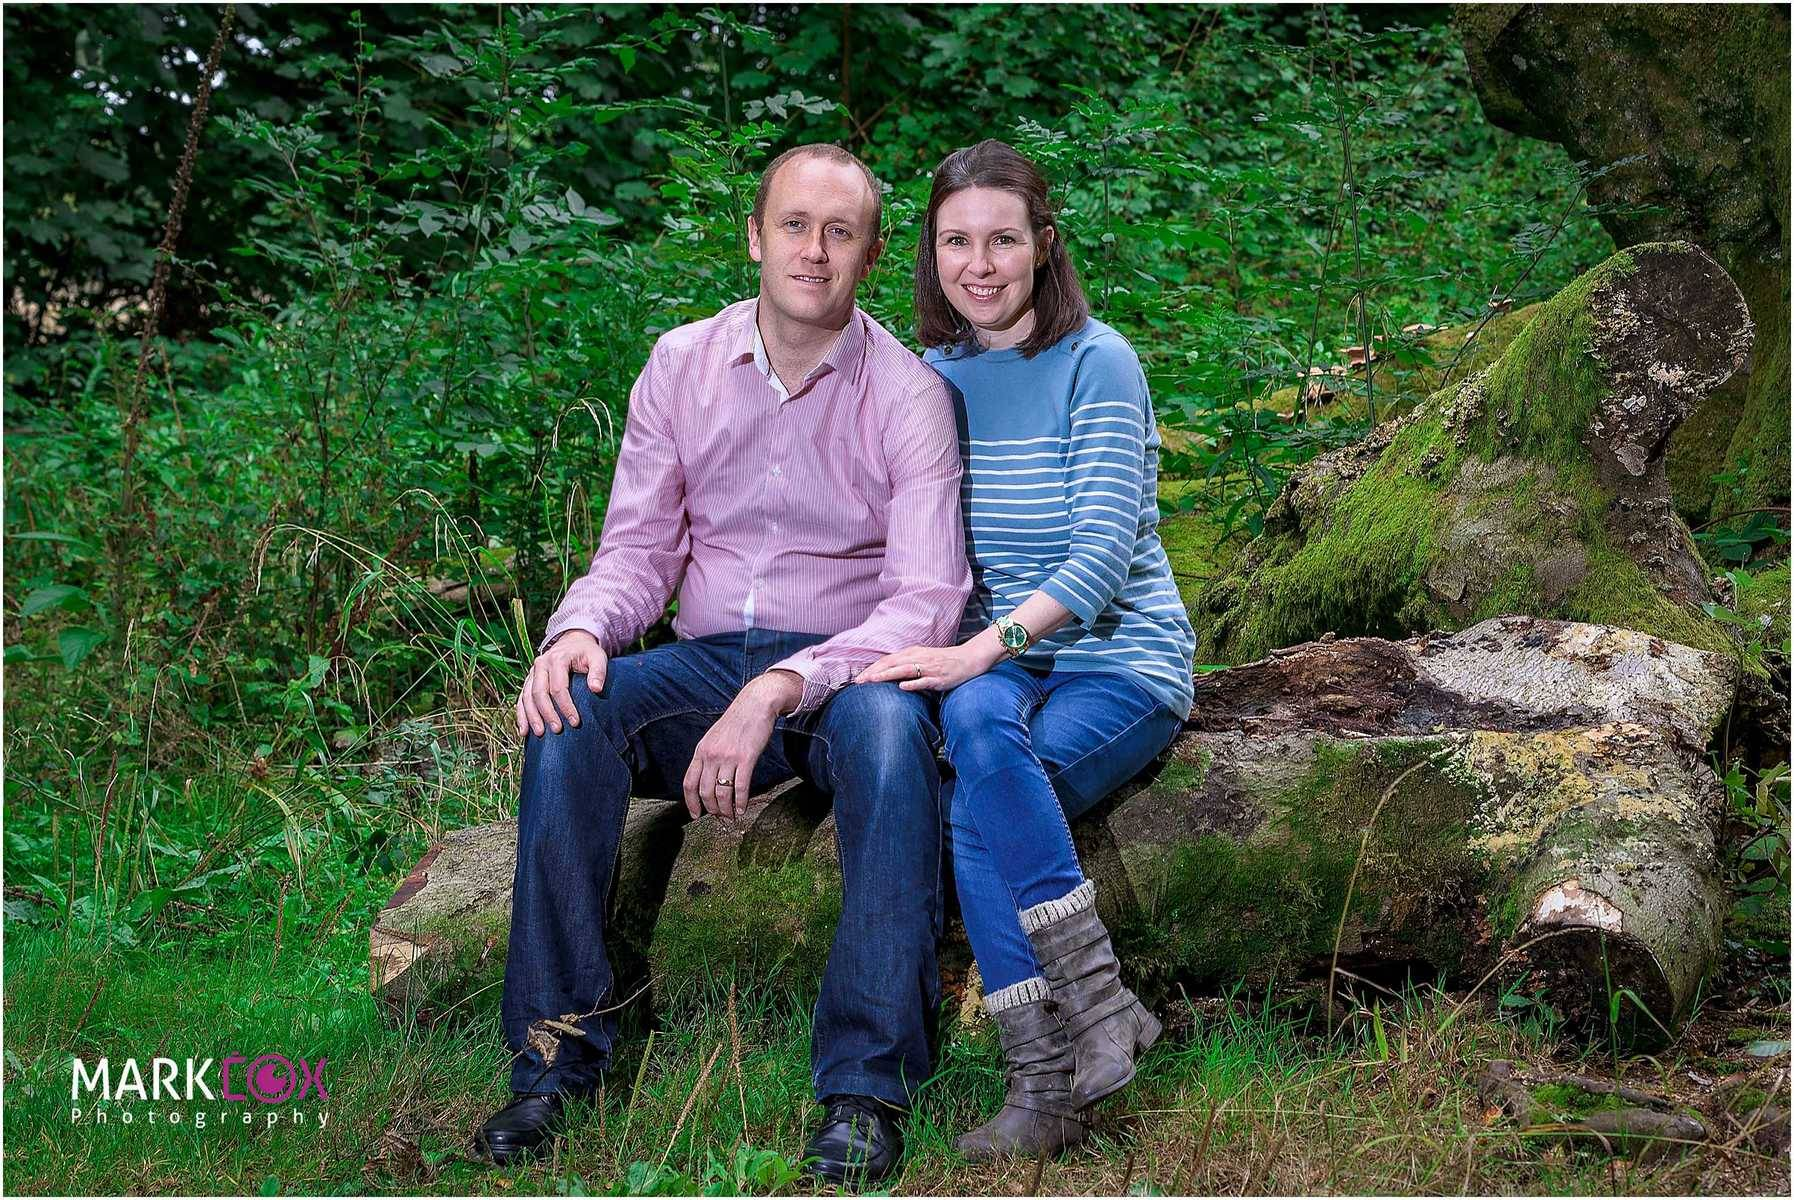 Family Photography in Taunton, a family portrait, a photograph of the parents